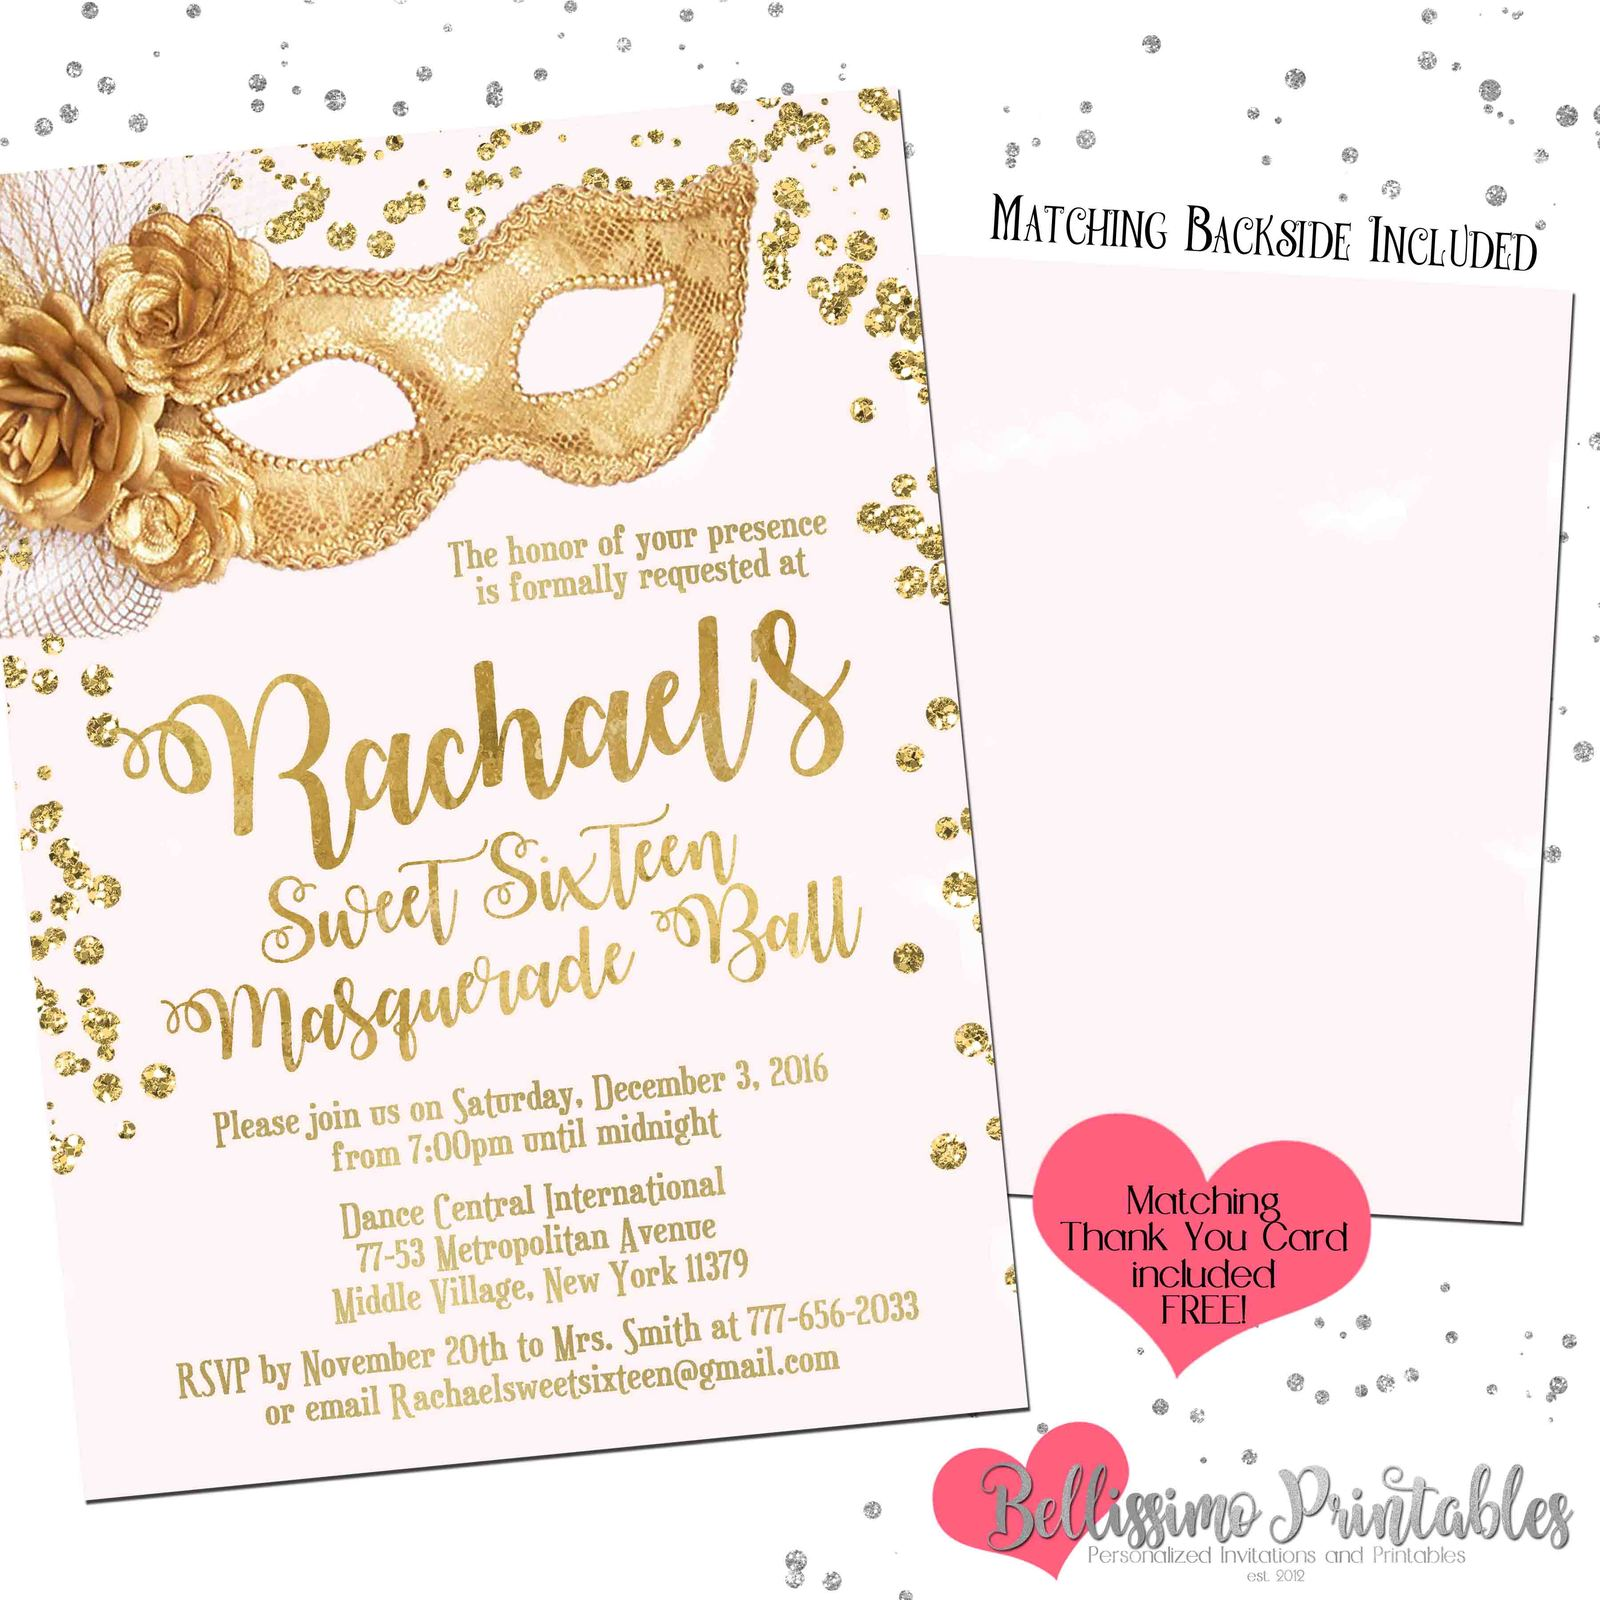 graphic about Free Printable Masquerade Invitations titled Masquerade Crimson Gold Glitter Birthday and comparable solutions